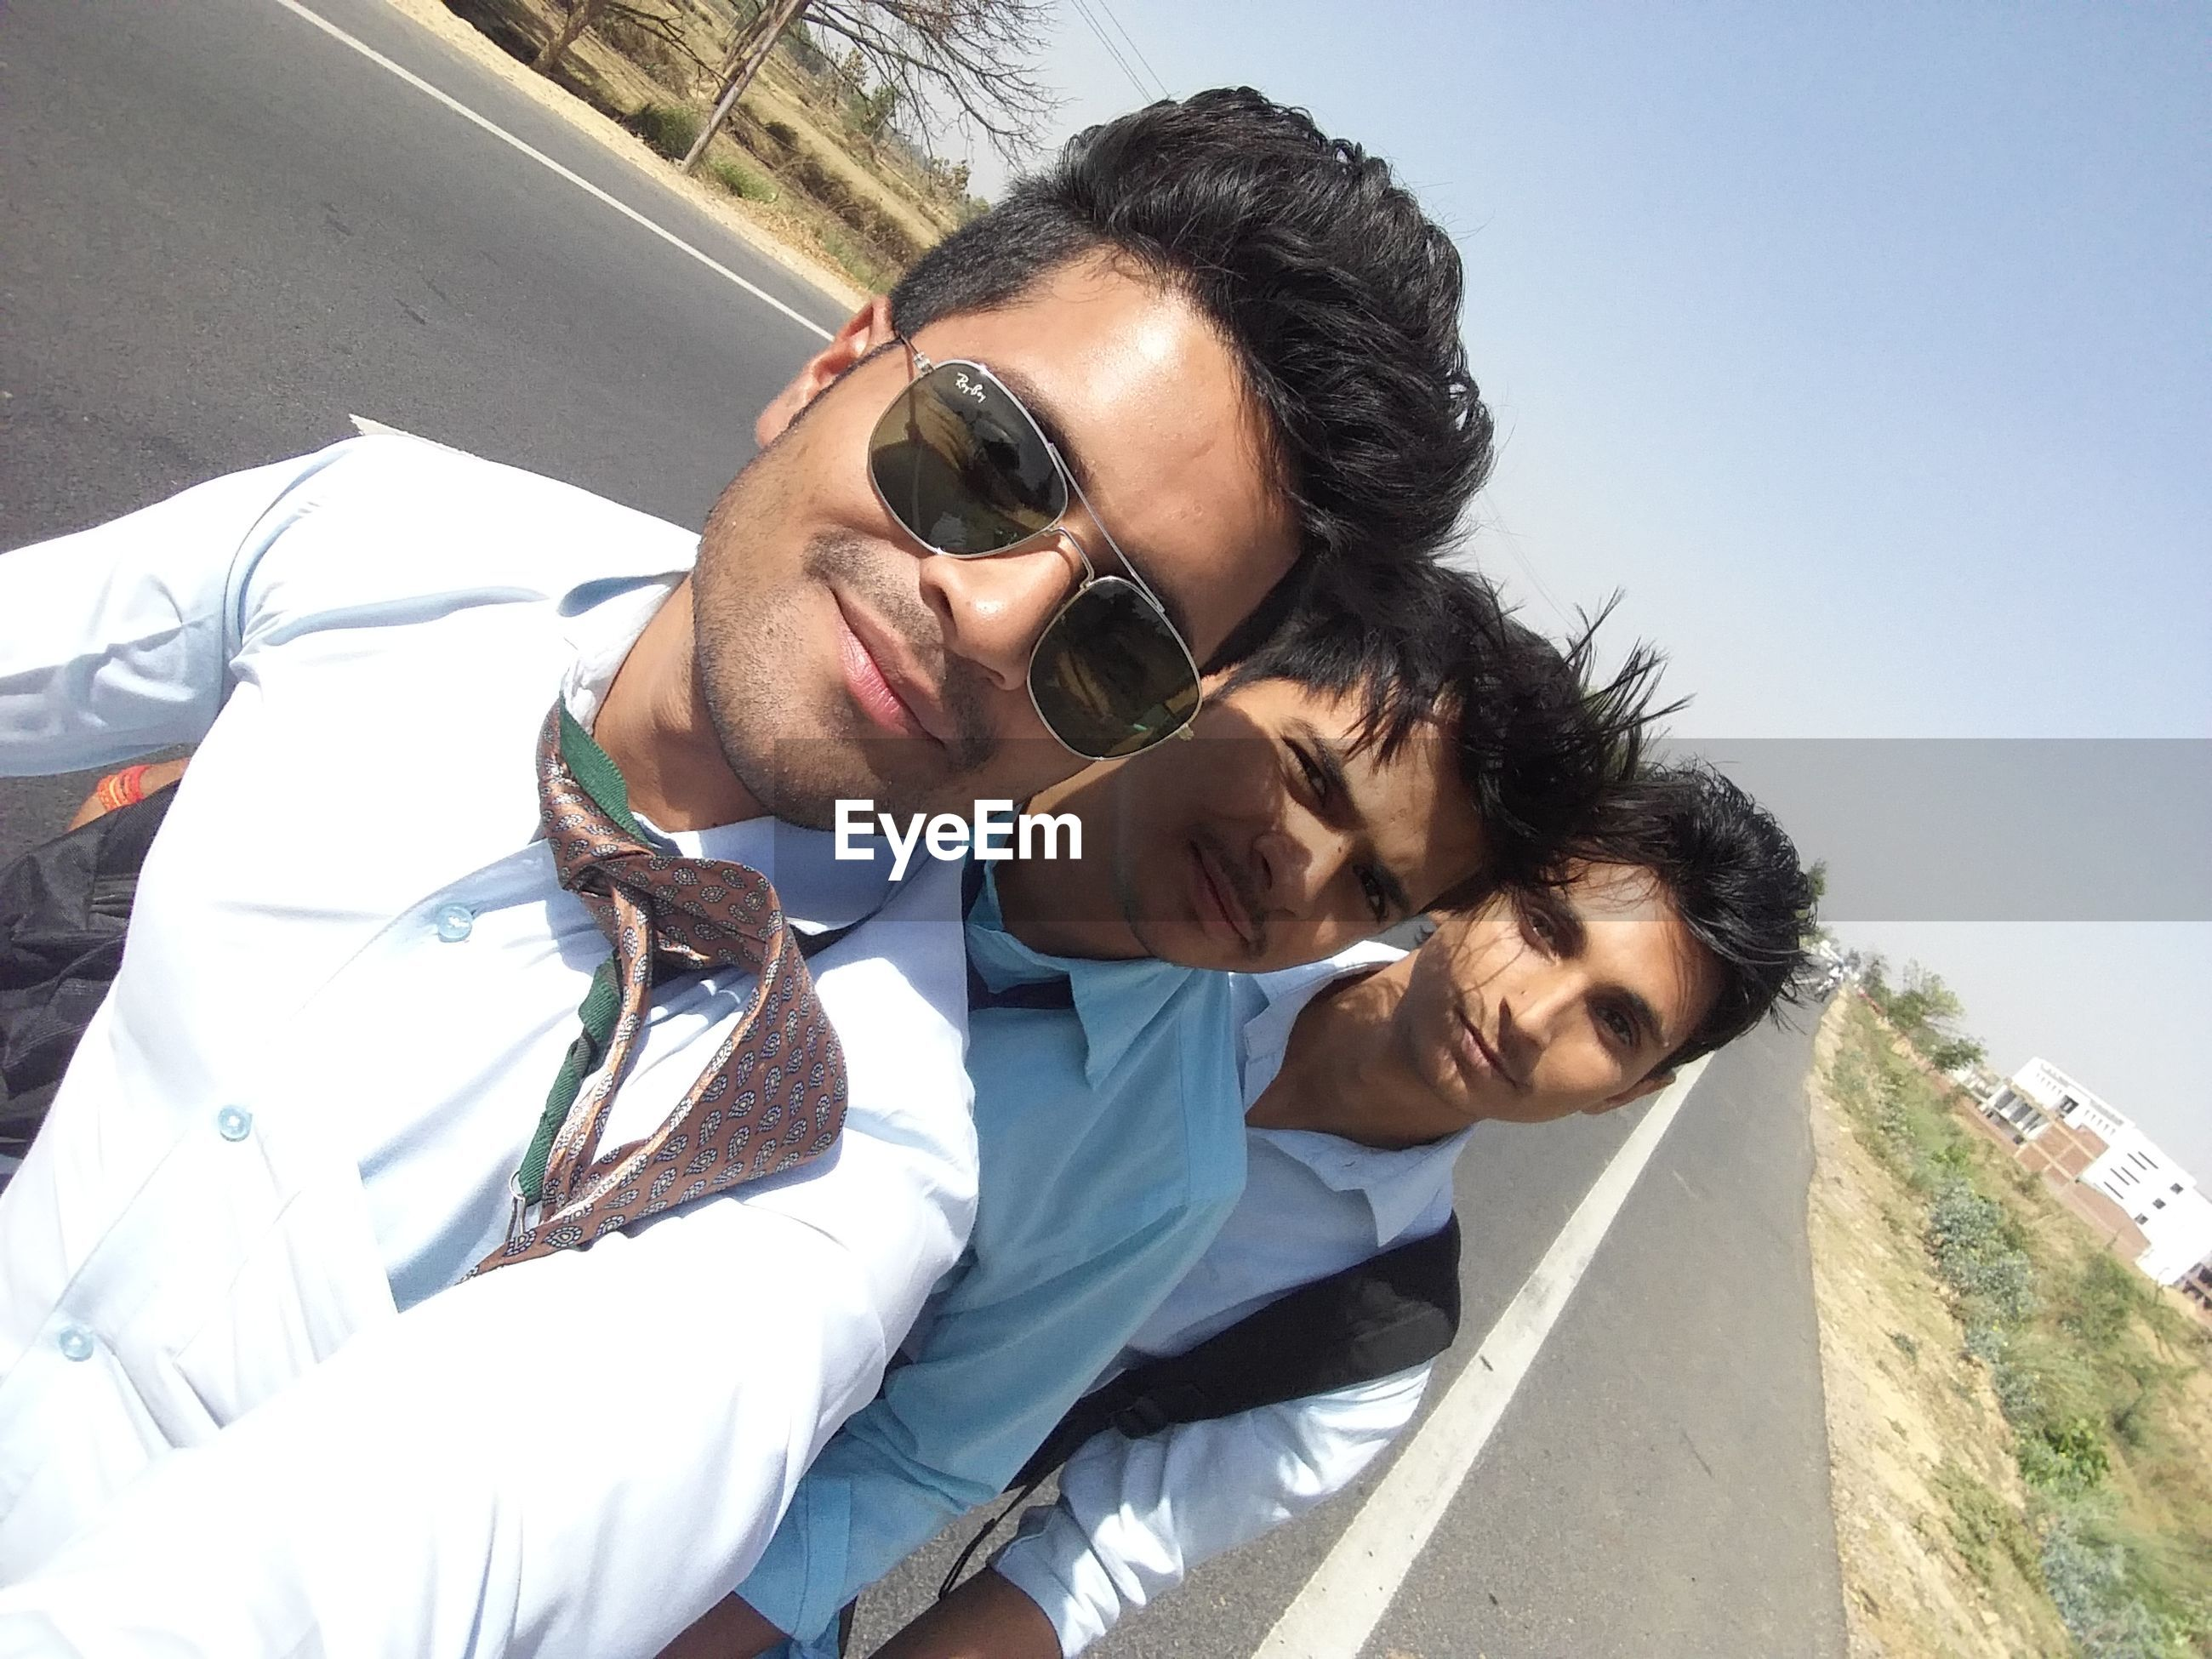 sunglasses, young men, young adult, real people, togetherness, two people, lifestyles, young women, leisure activity, sunlight, day, happiness, clear sky, bonding, men, smiling, sky, outdoors, close-up, portrait, adults only, beach, cheerful, people, adult